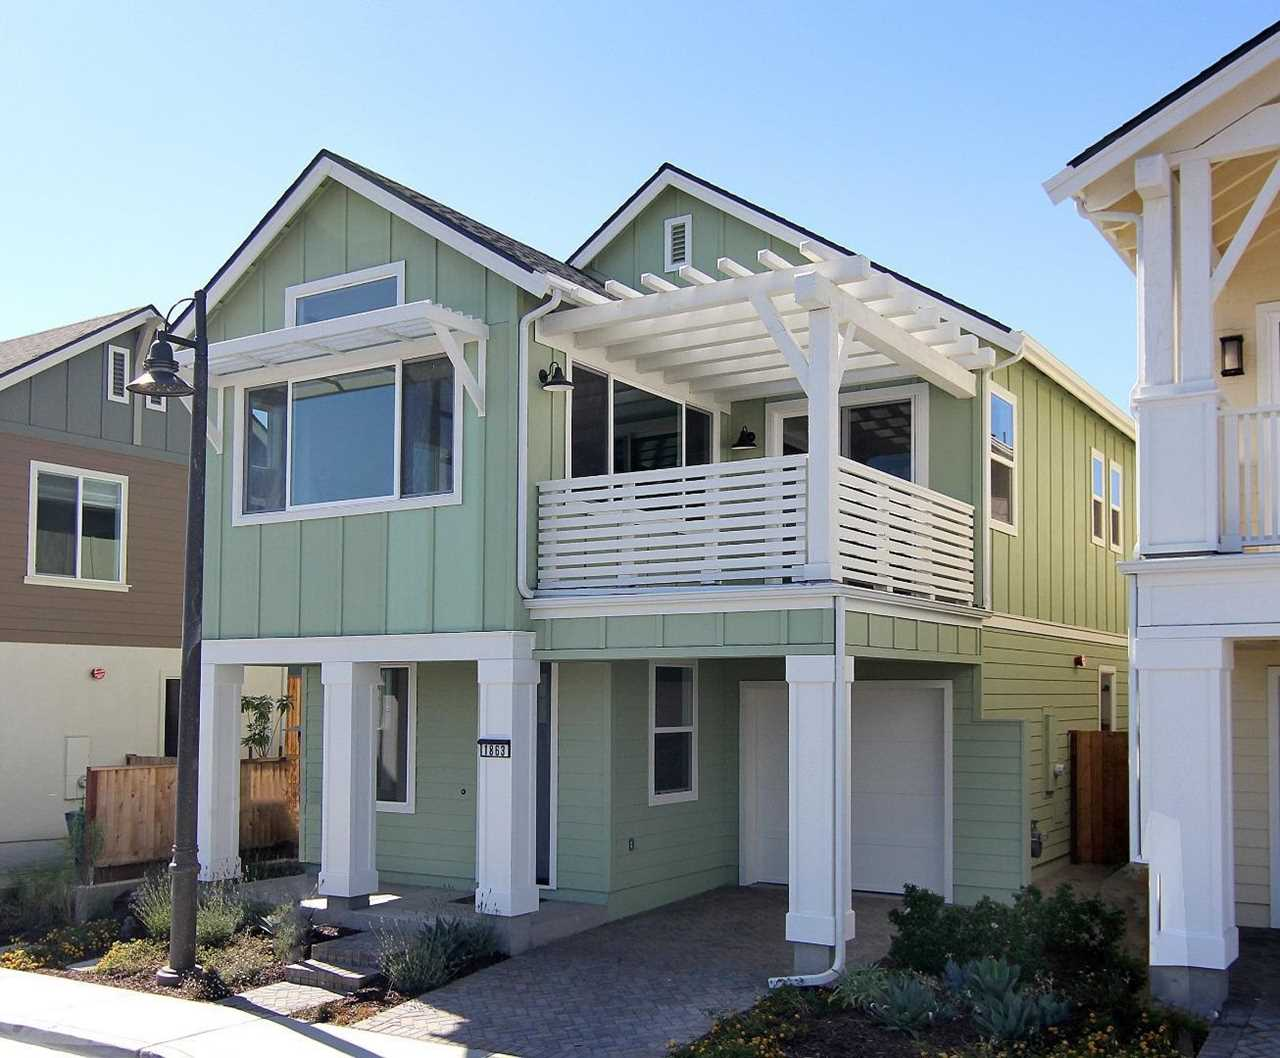 1863 Ocean View Ave,SAND CITY,CA,homes for sale in SAND CITY Photo 1